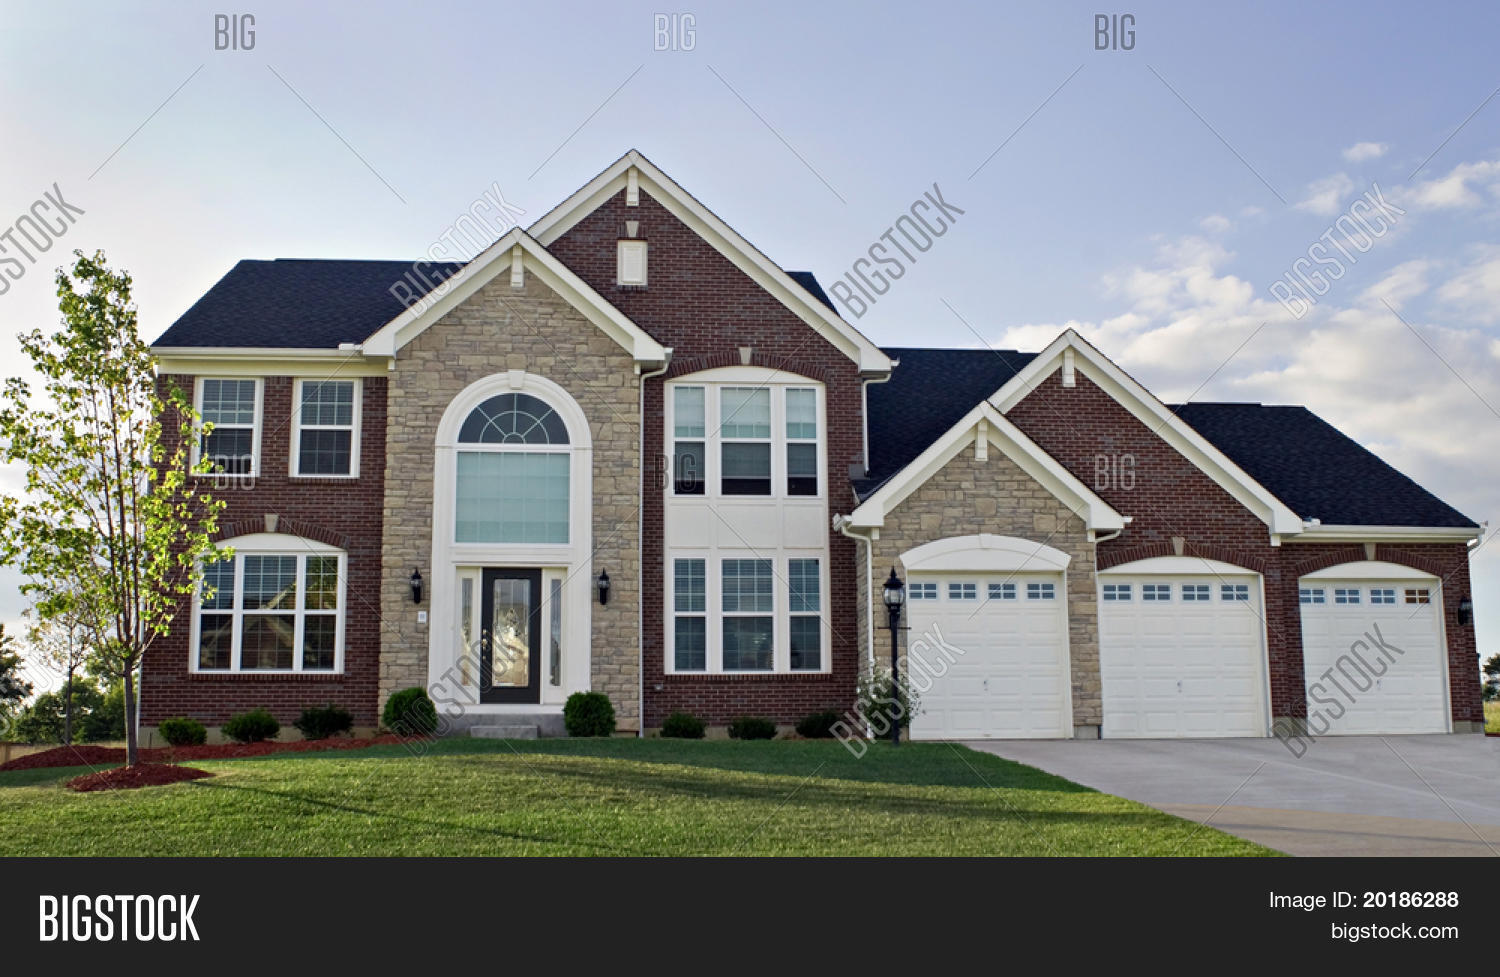 Three car garage luxury home image photo bigstock for 3 car garage homes